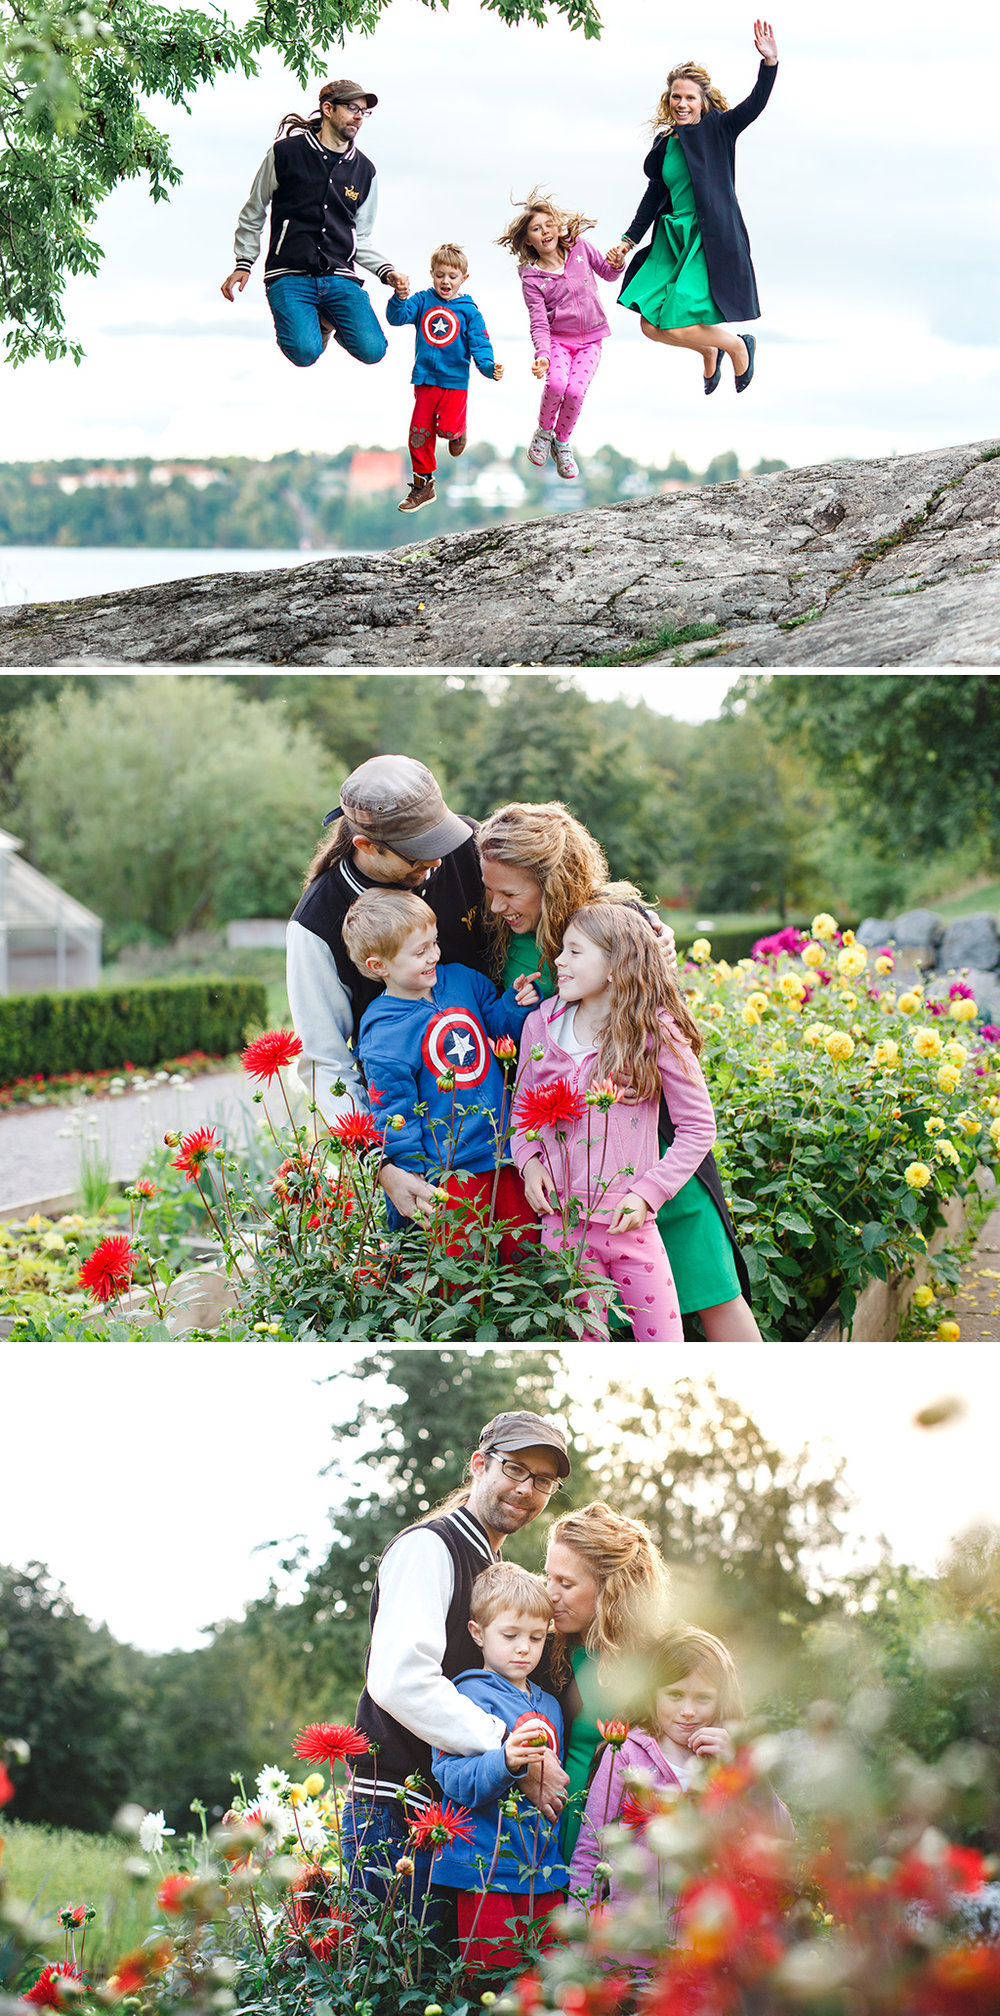 Hostfotografering_september_familjefotografering-i-stockholm-2.jpg